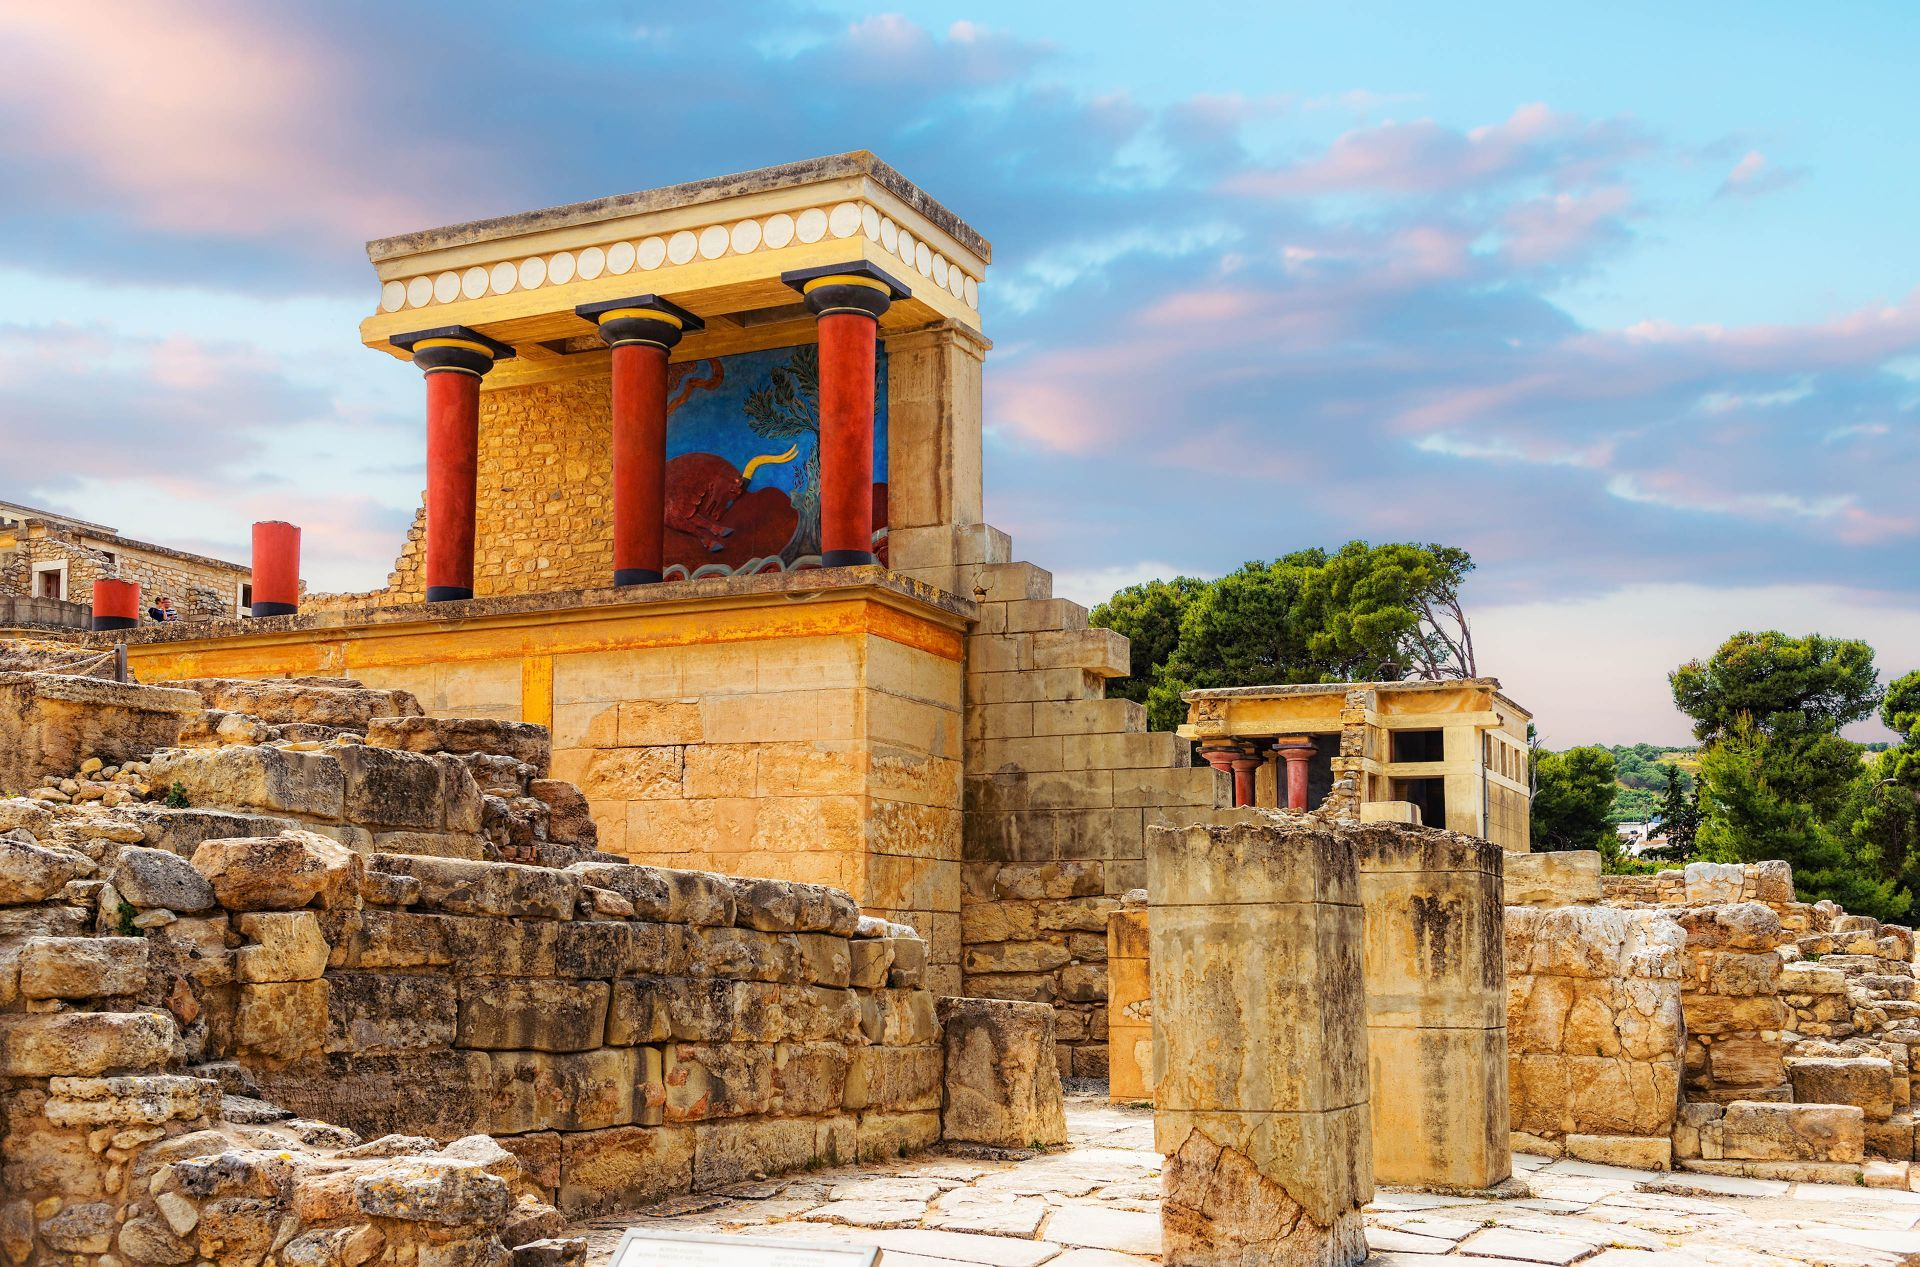 Crete Greece: Knossos palace in Heraklion, Crete